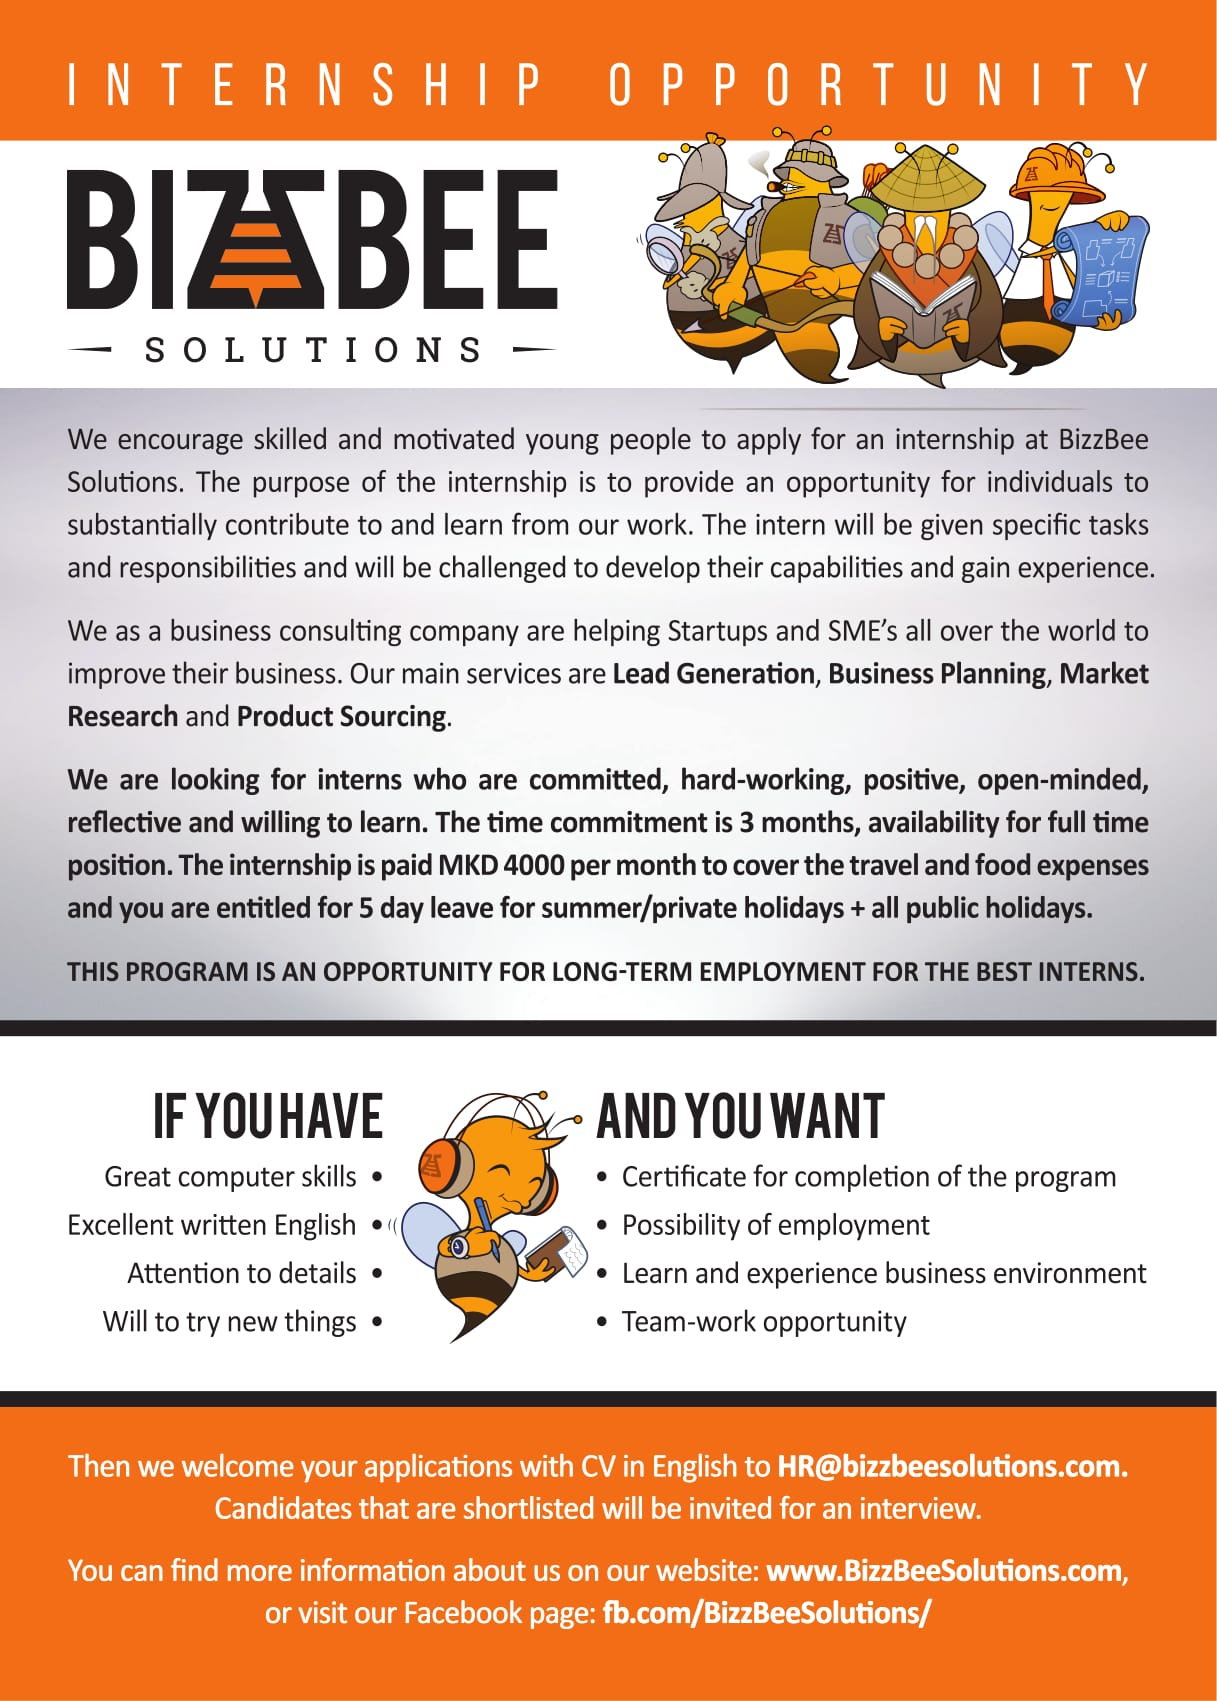 Internship at BizzBee Solutions